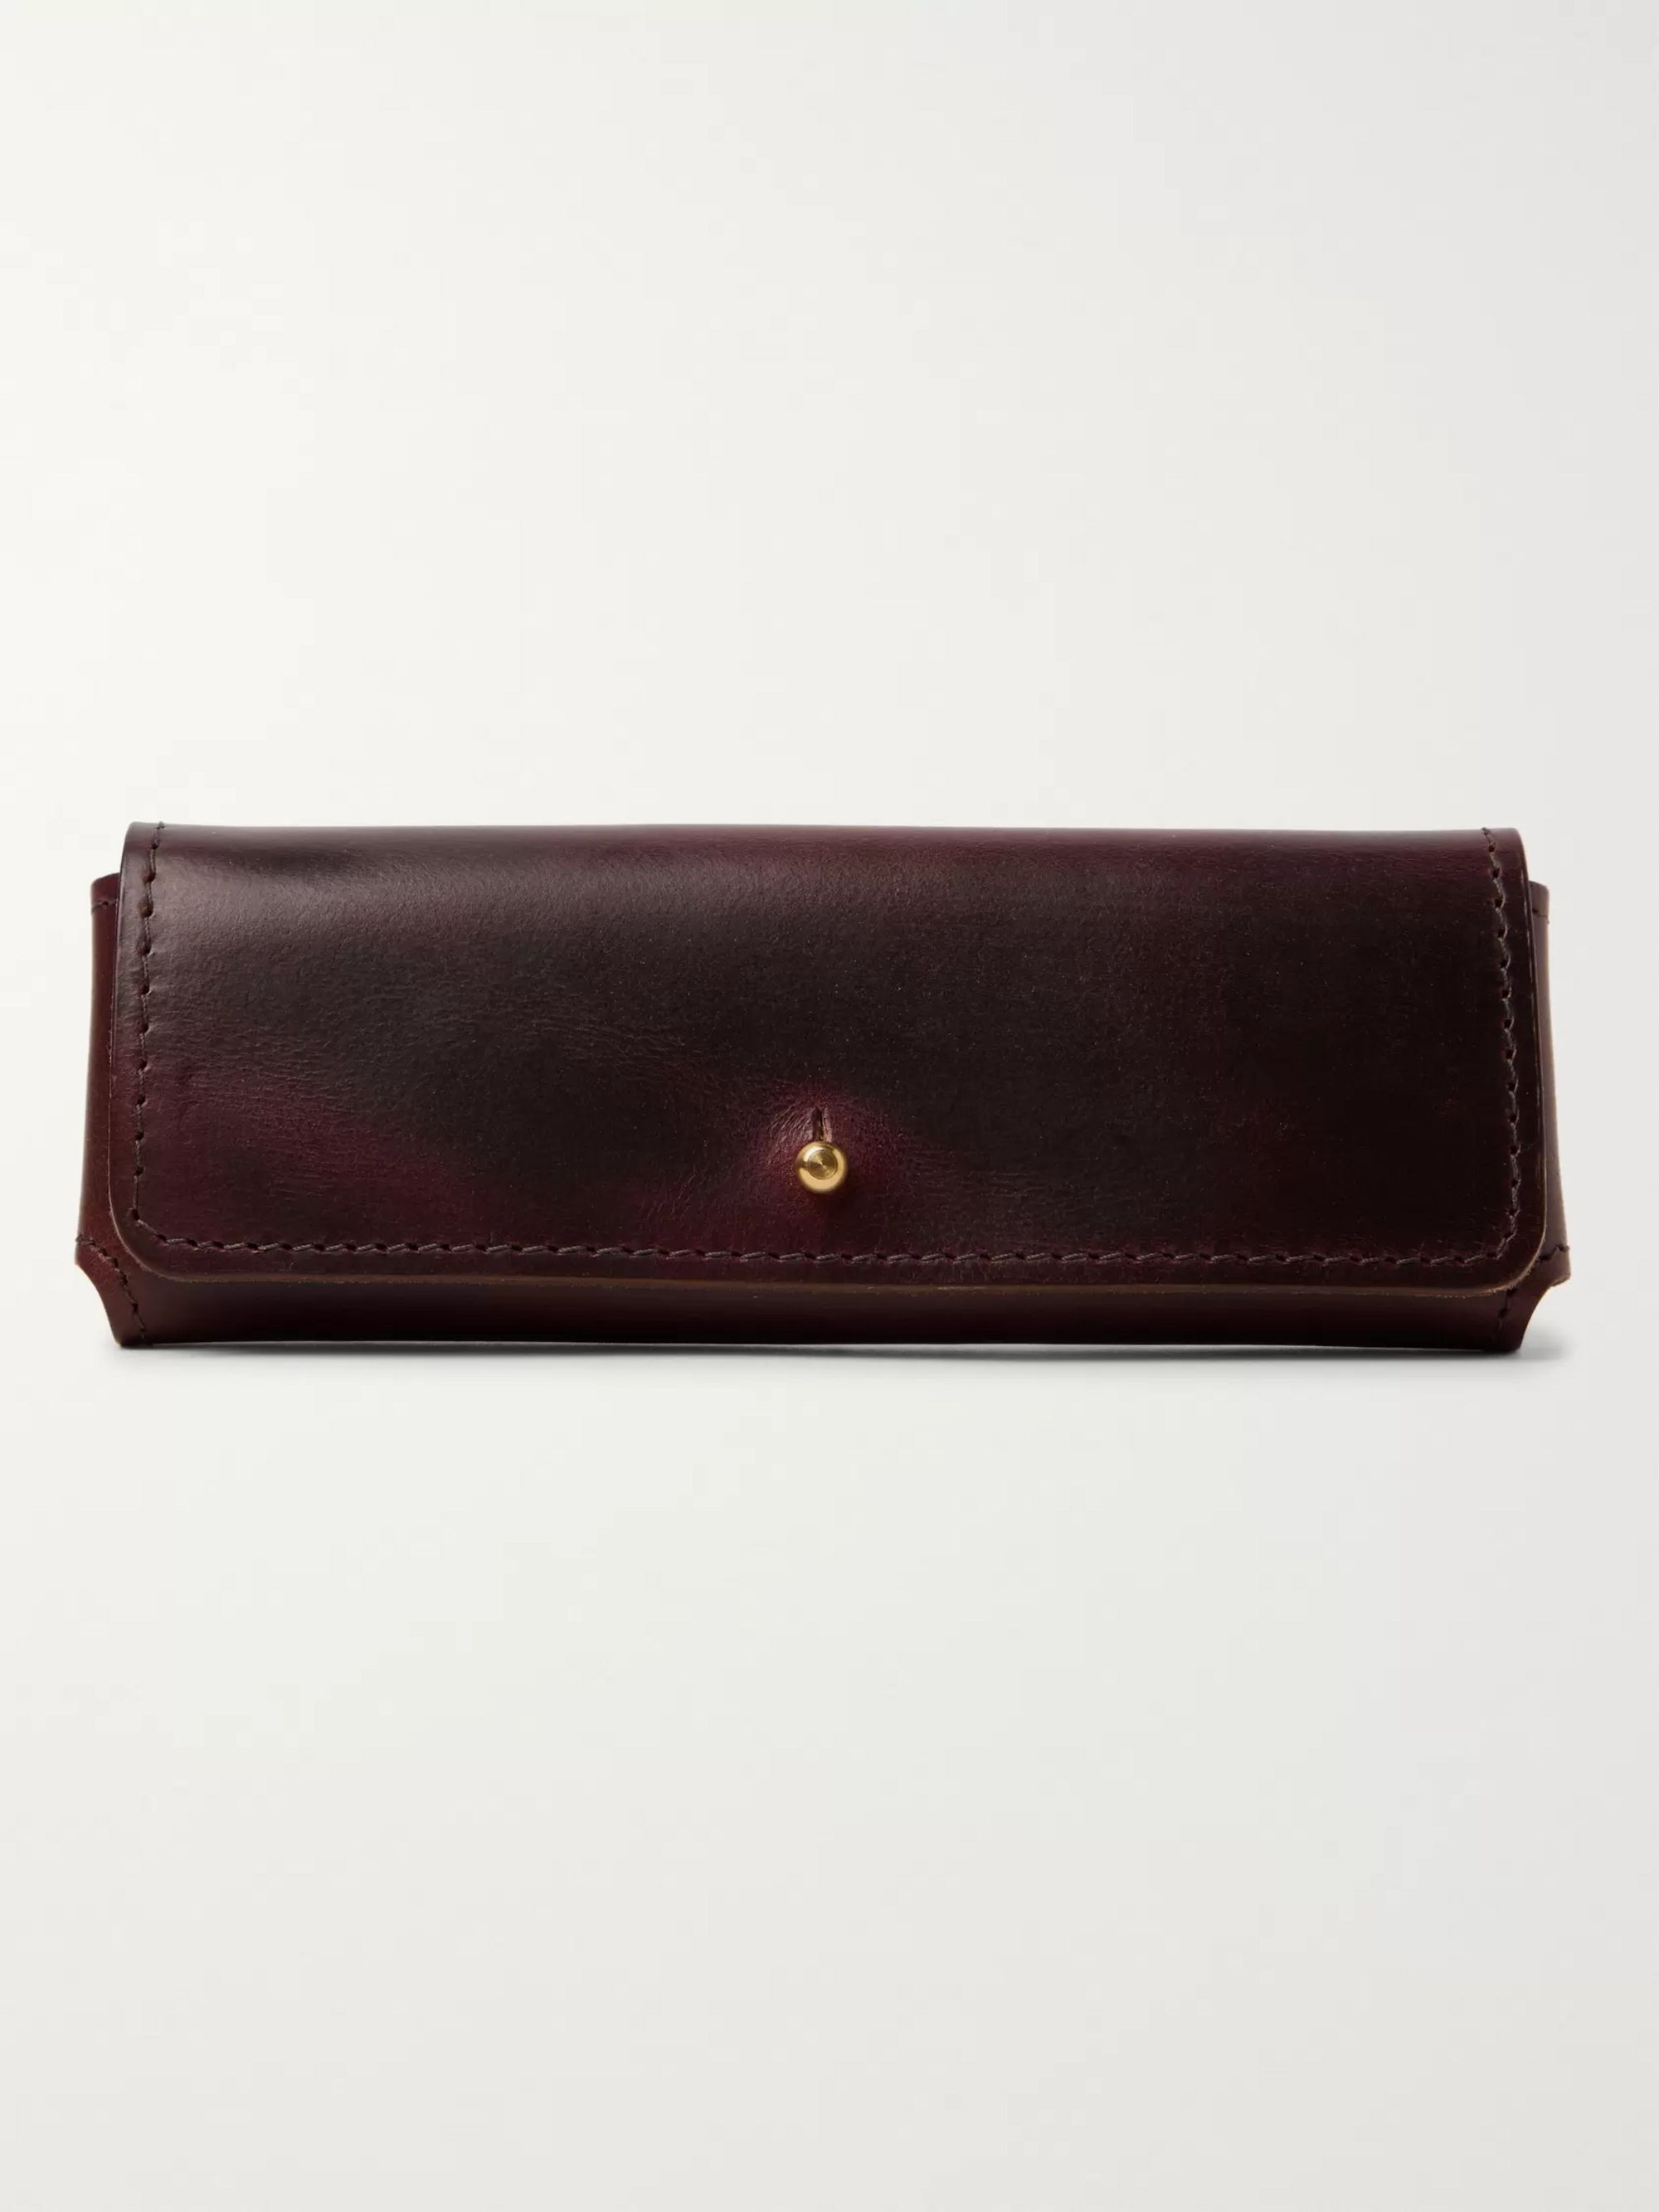 Leather Sunglasses Case by Cubitts